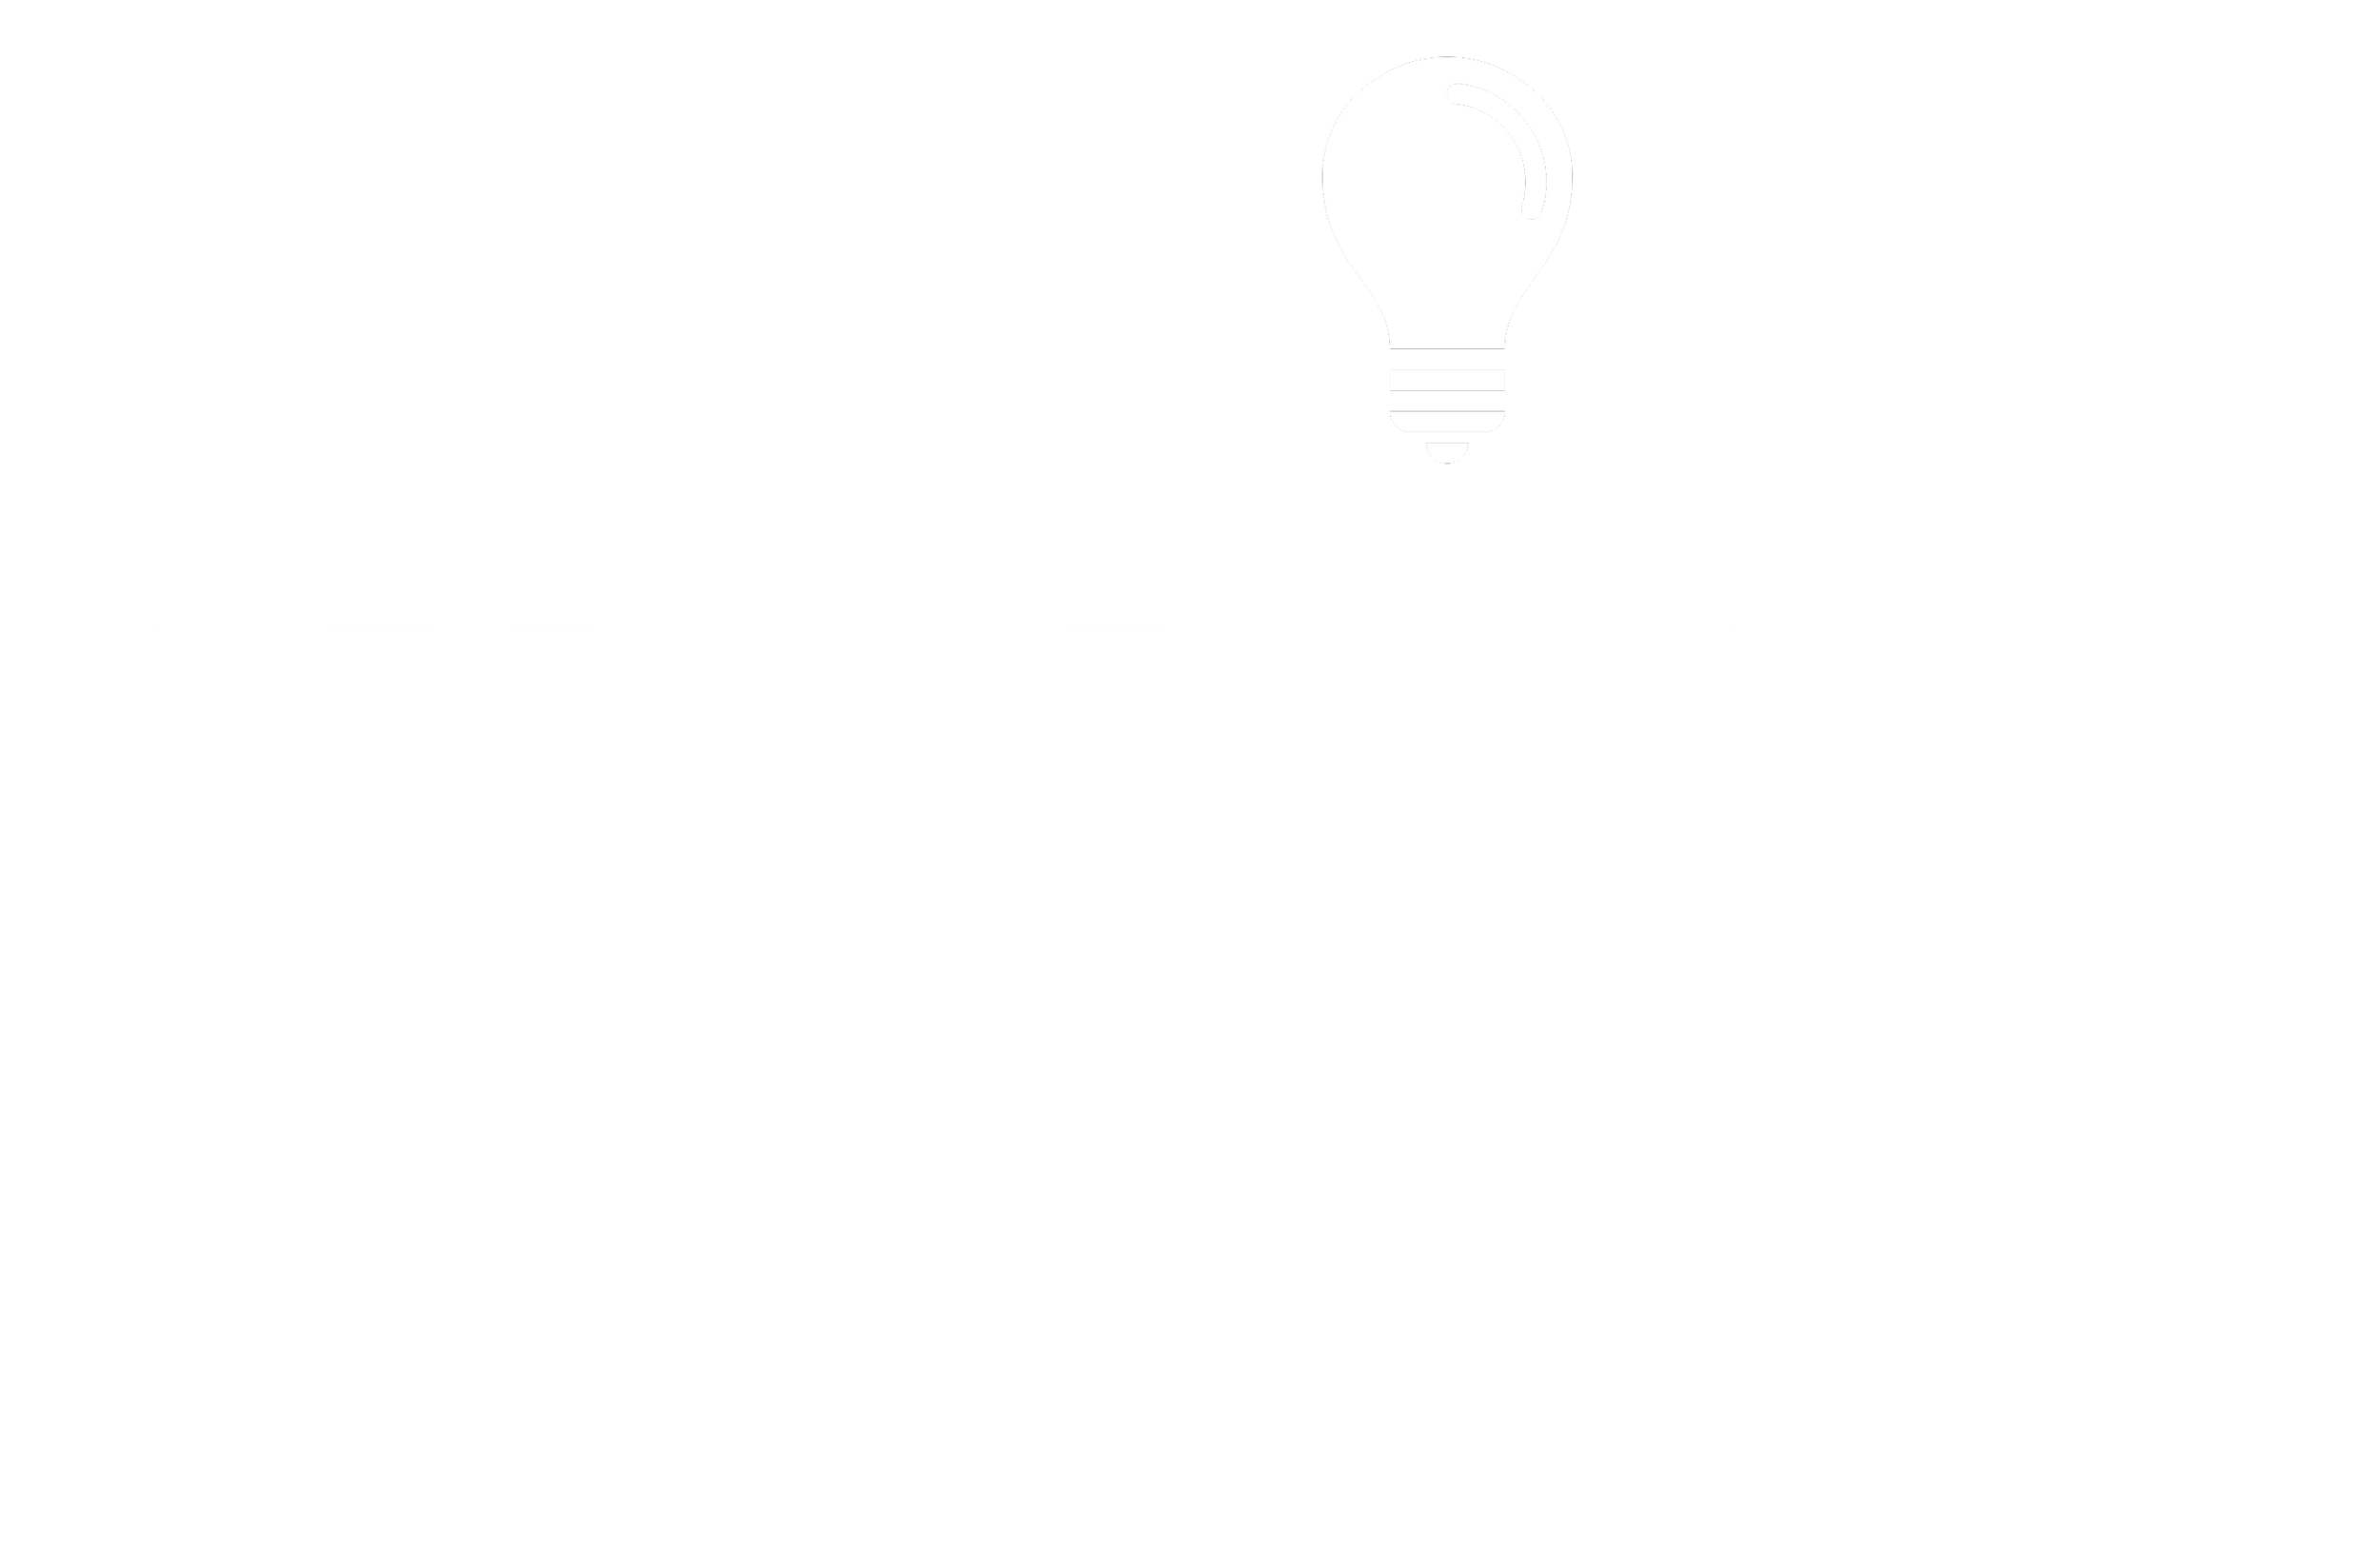 Studio Twenty-Three Logo